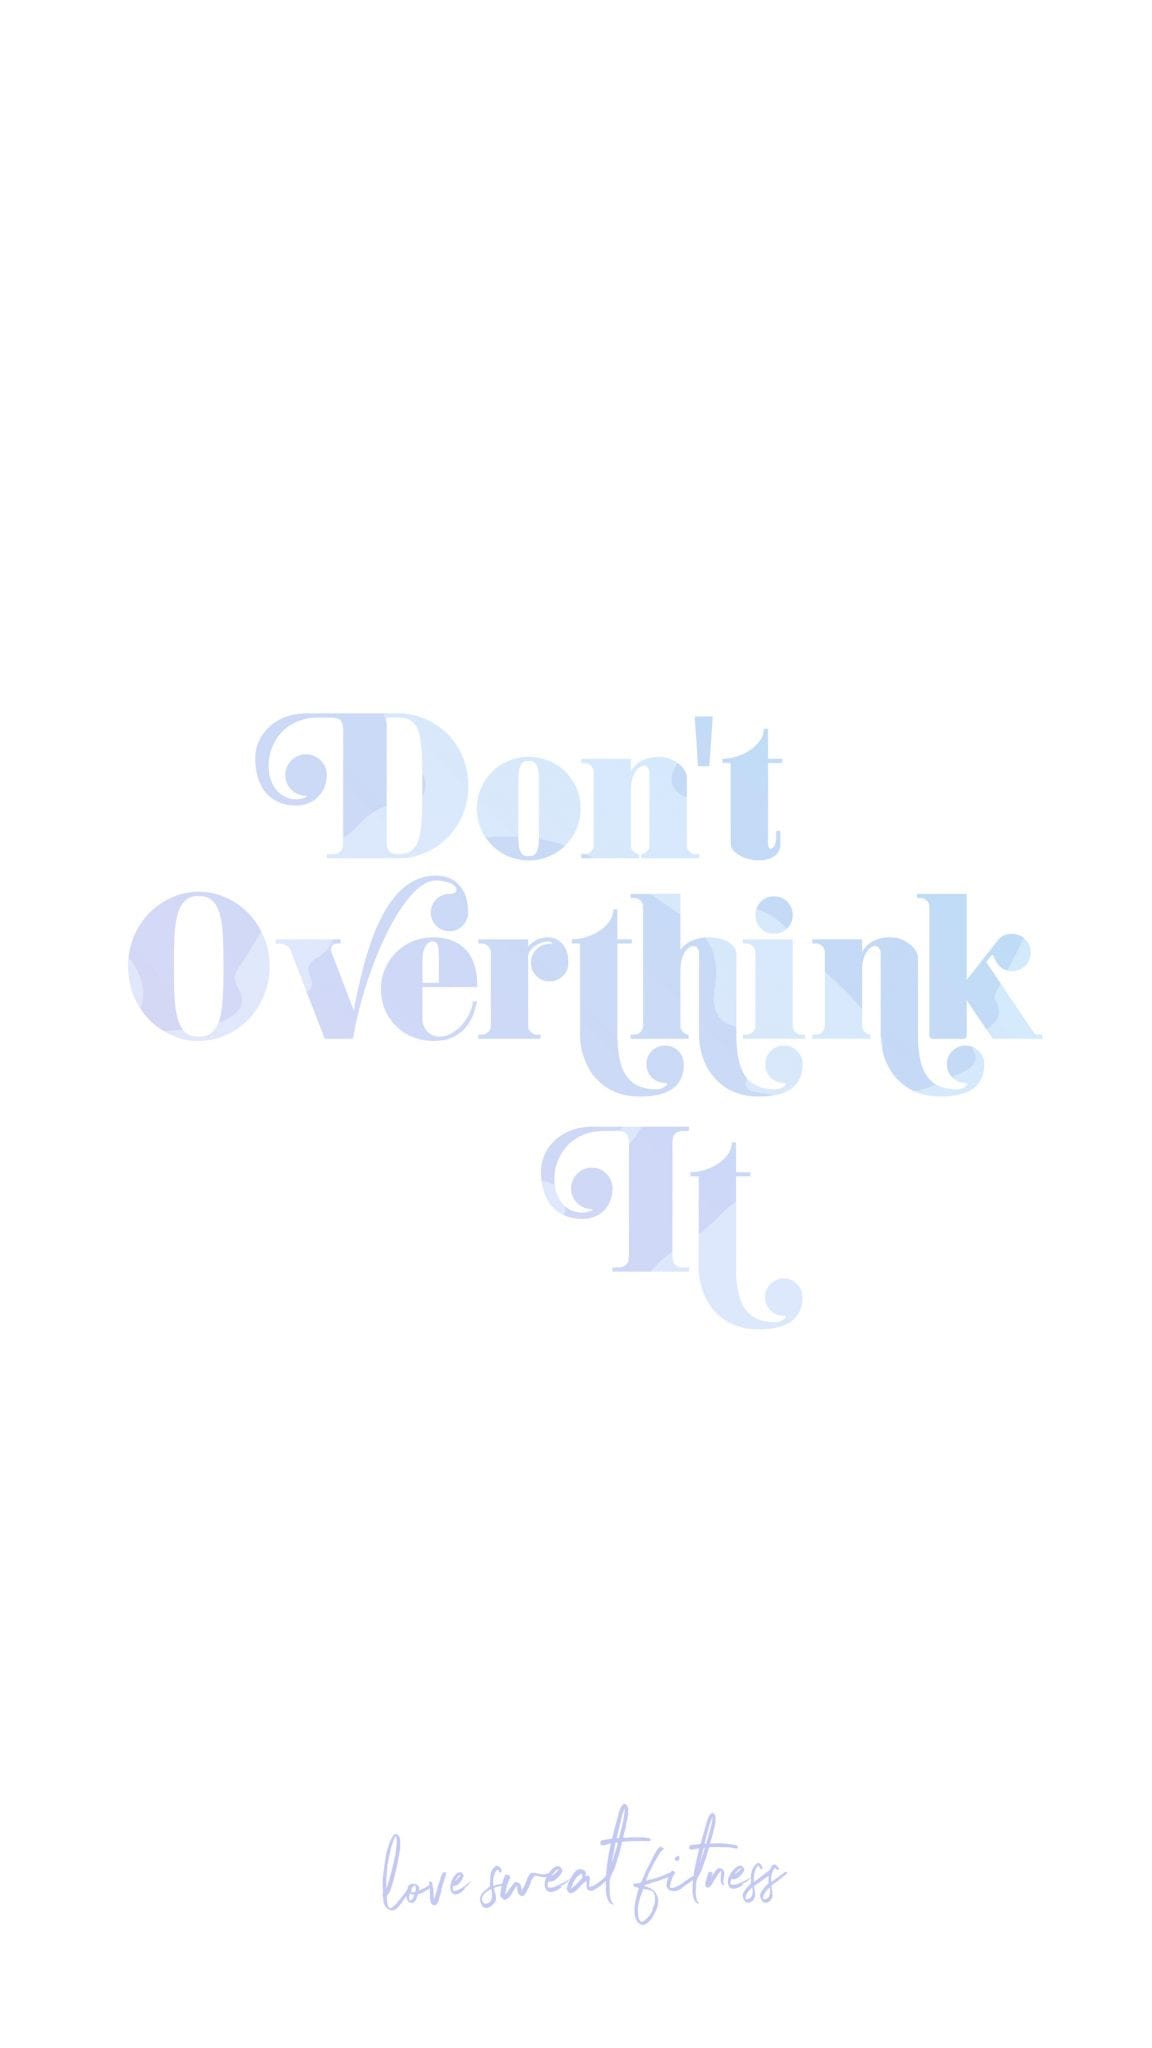 Cute Phone Wallpaper Background Motivational Quote Vintage